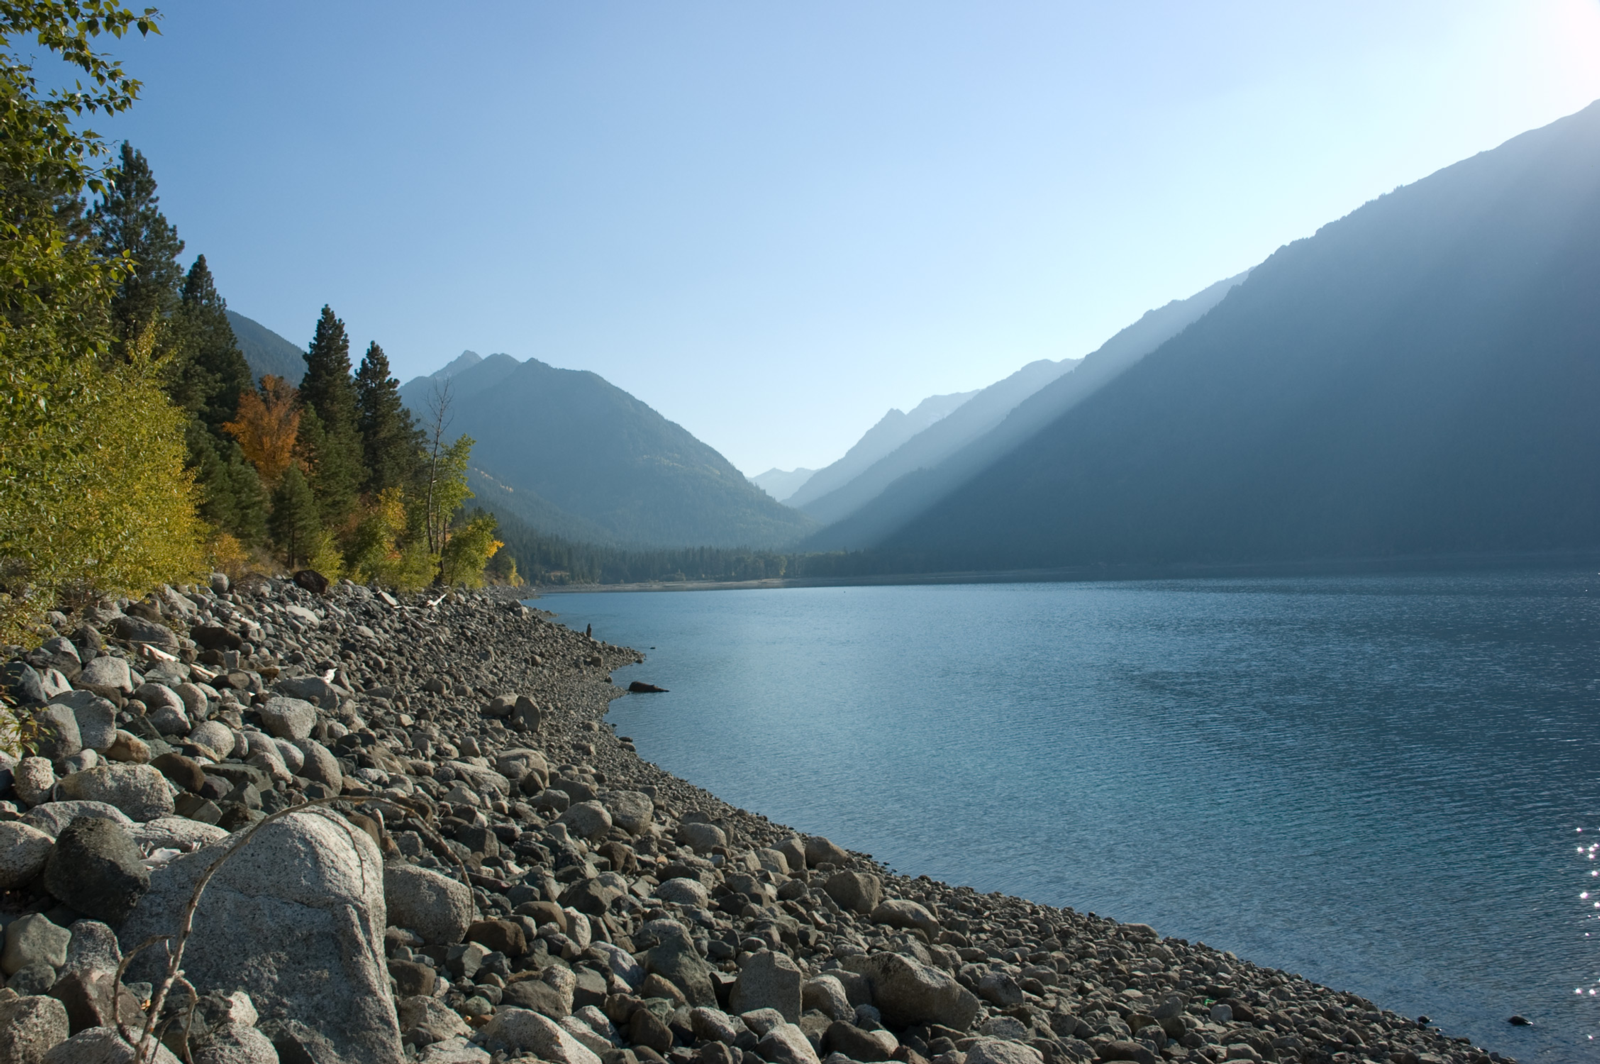 Wallowa Lake State Park (Oregon State Parks and Recreation)